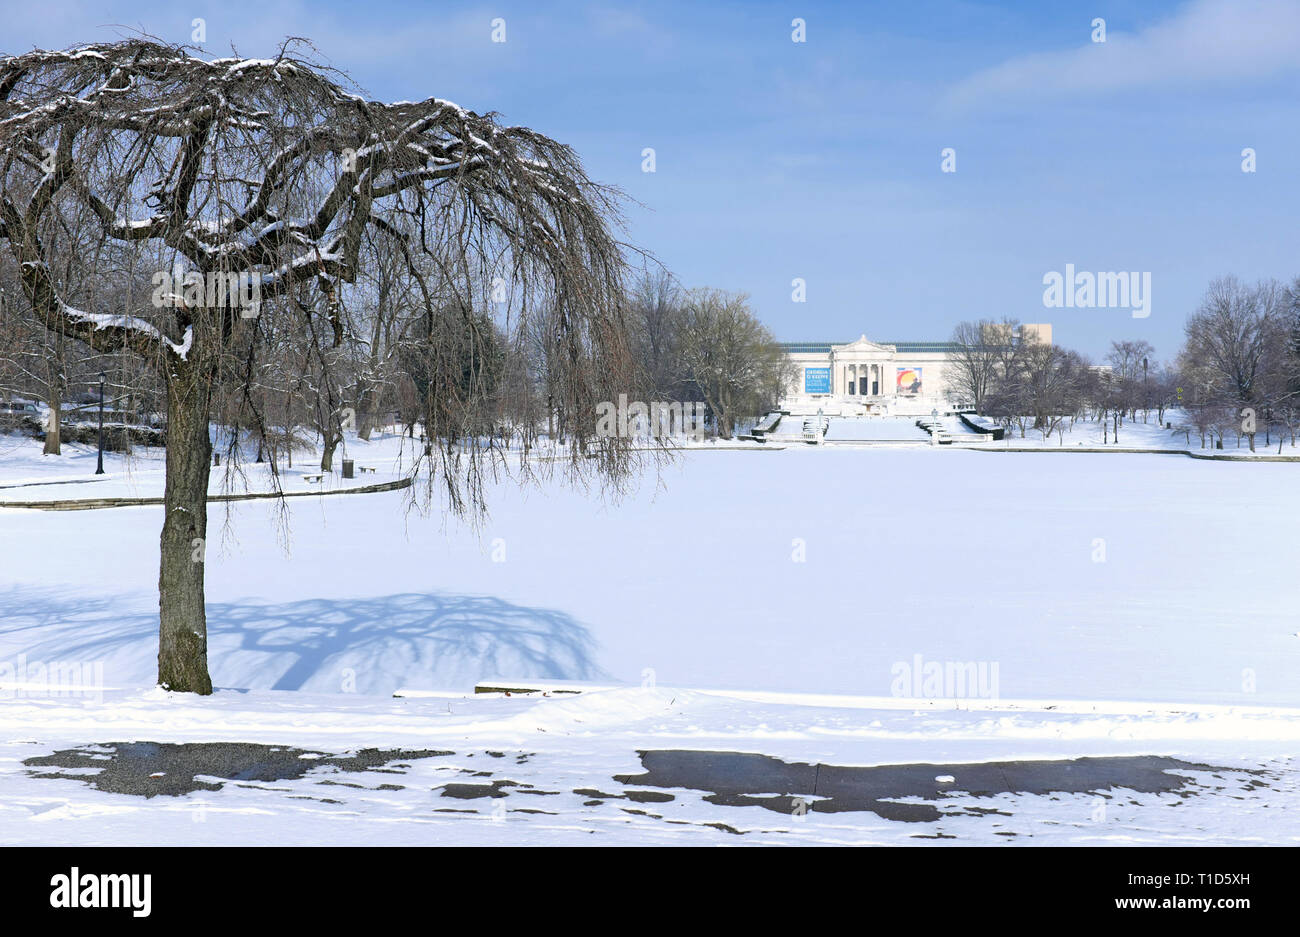 Wade Park and Pond in the University Circle neighborhood of Cleveland, Ohio, USA are covered in January snow in front of the Cleveland Museum of Art. Stock Photo